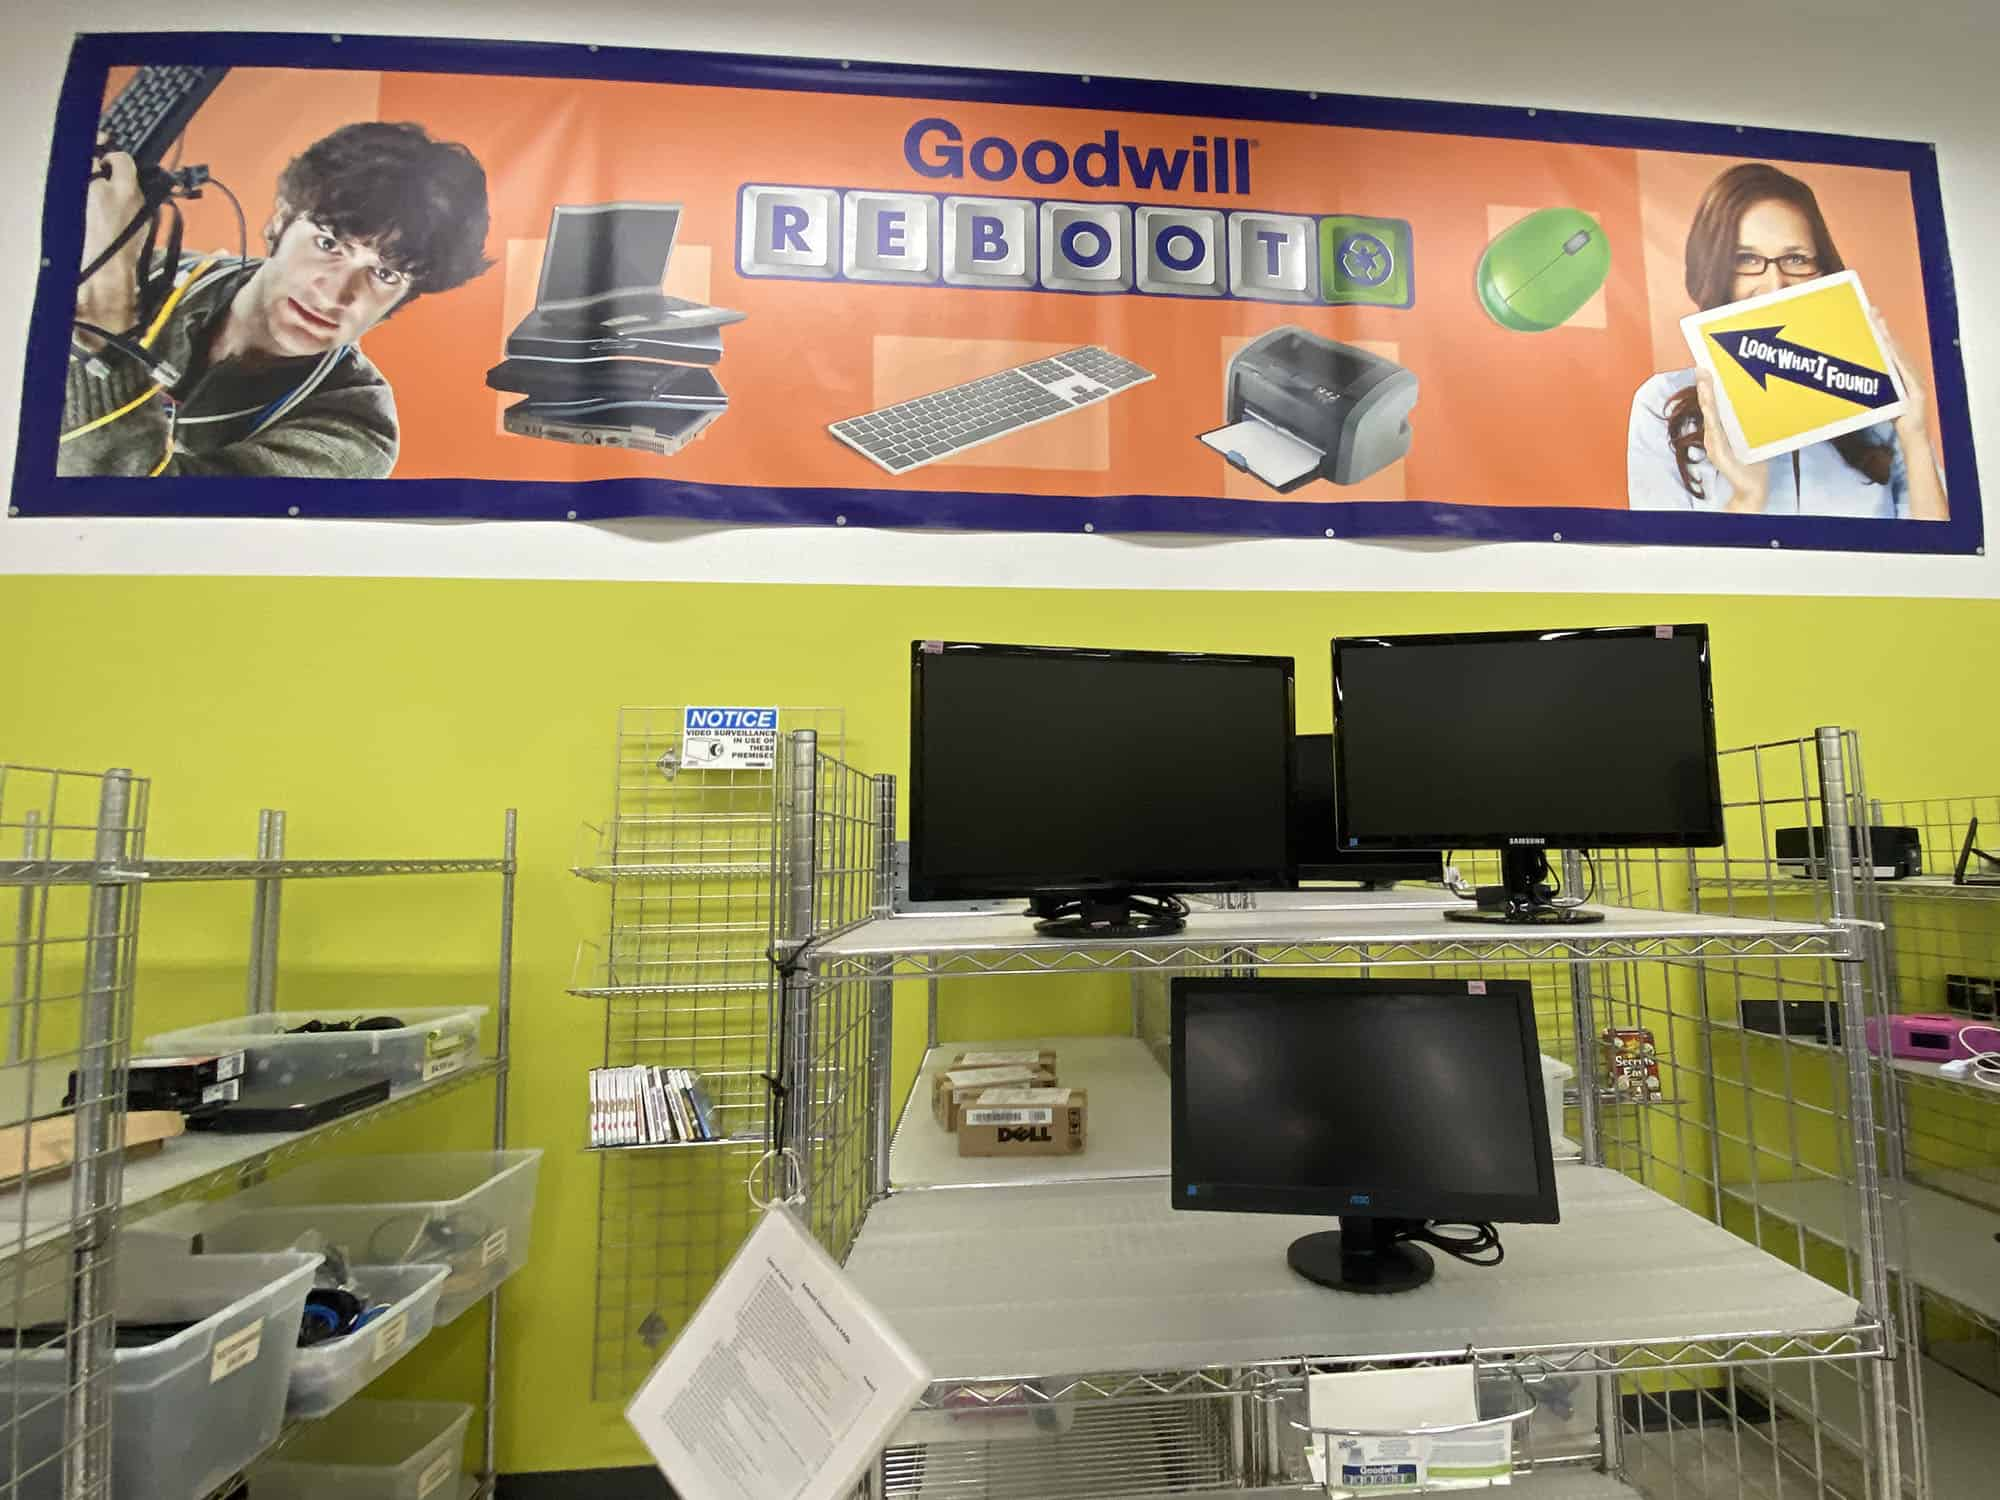 A view of Goodwill Reboot in the Iowa City store.